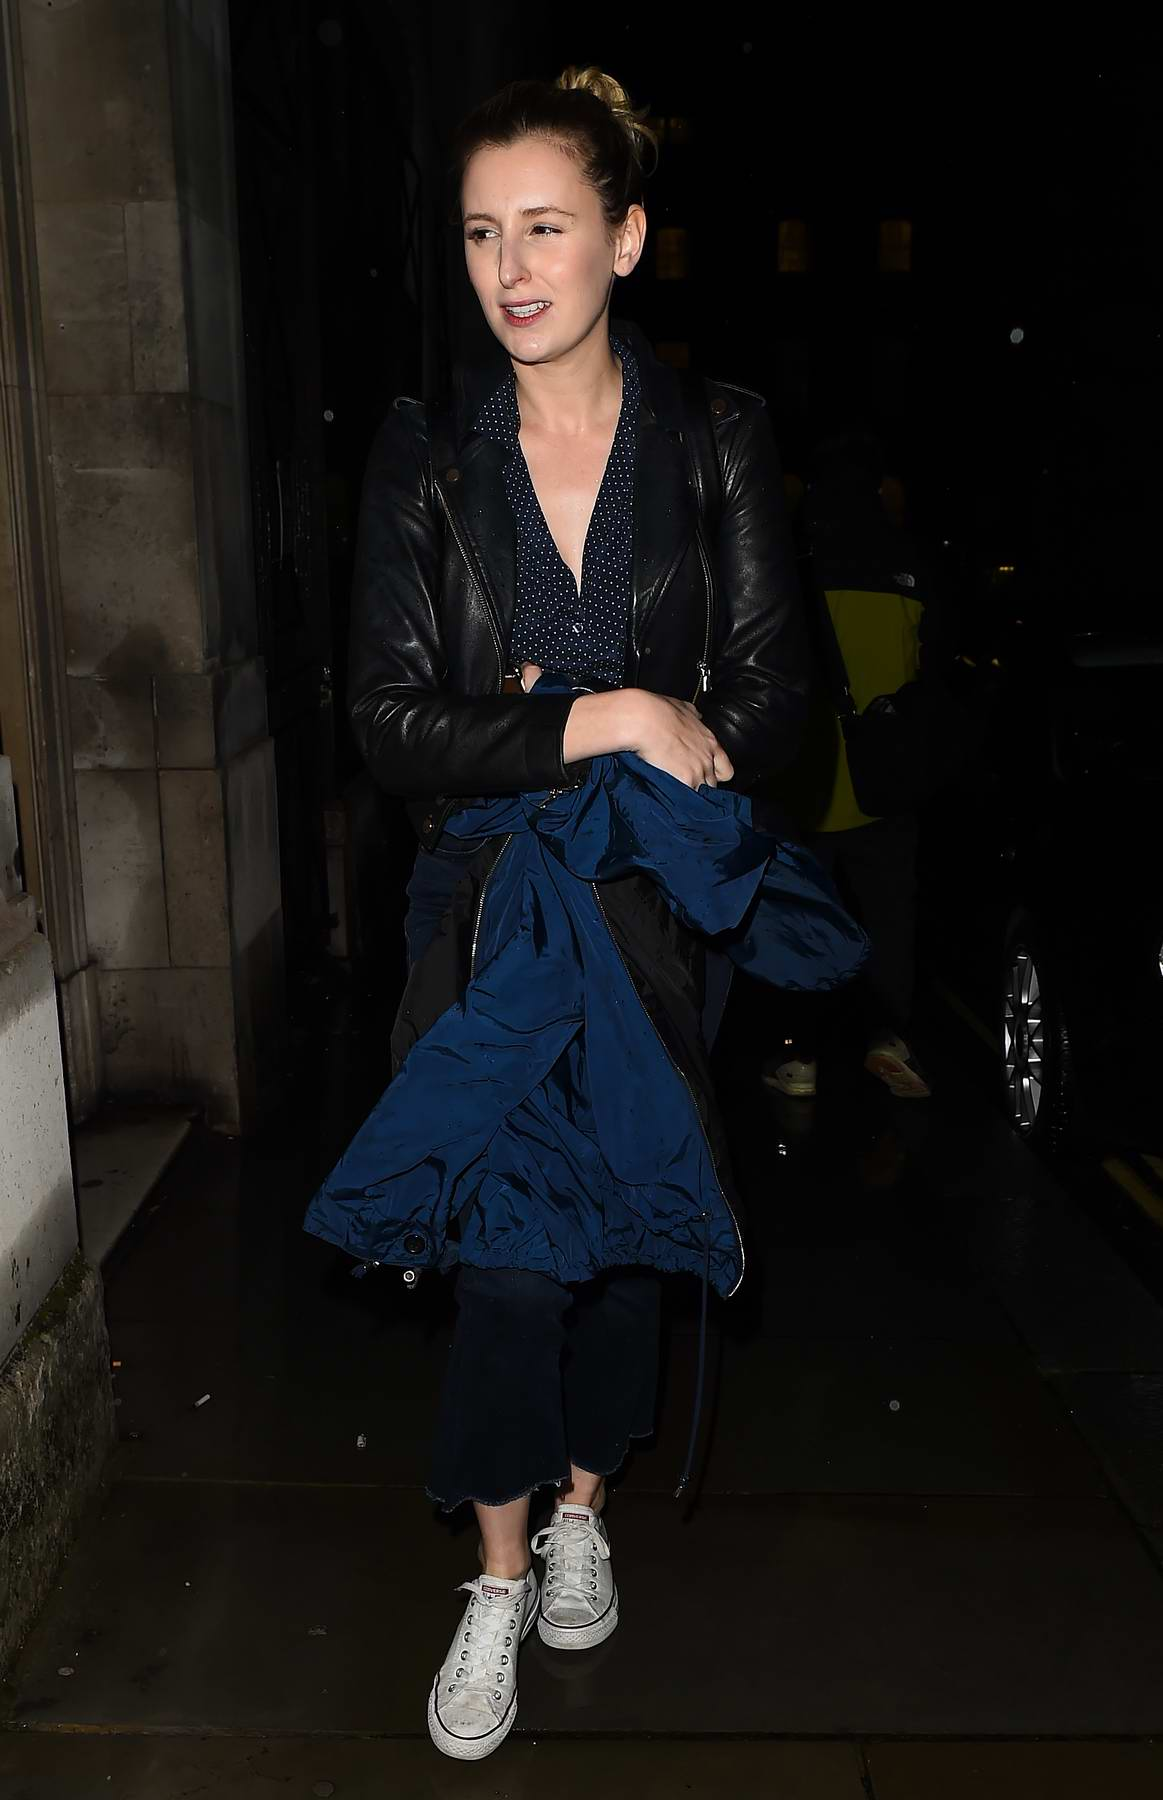 Laura Carmichael leaves the Trafalgar Theatre following her Disco Pigs performance in London